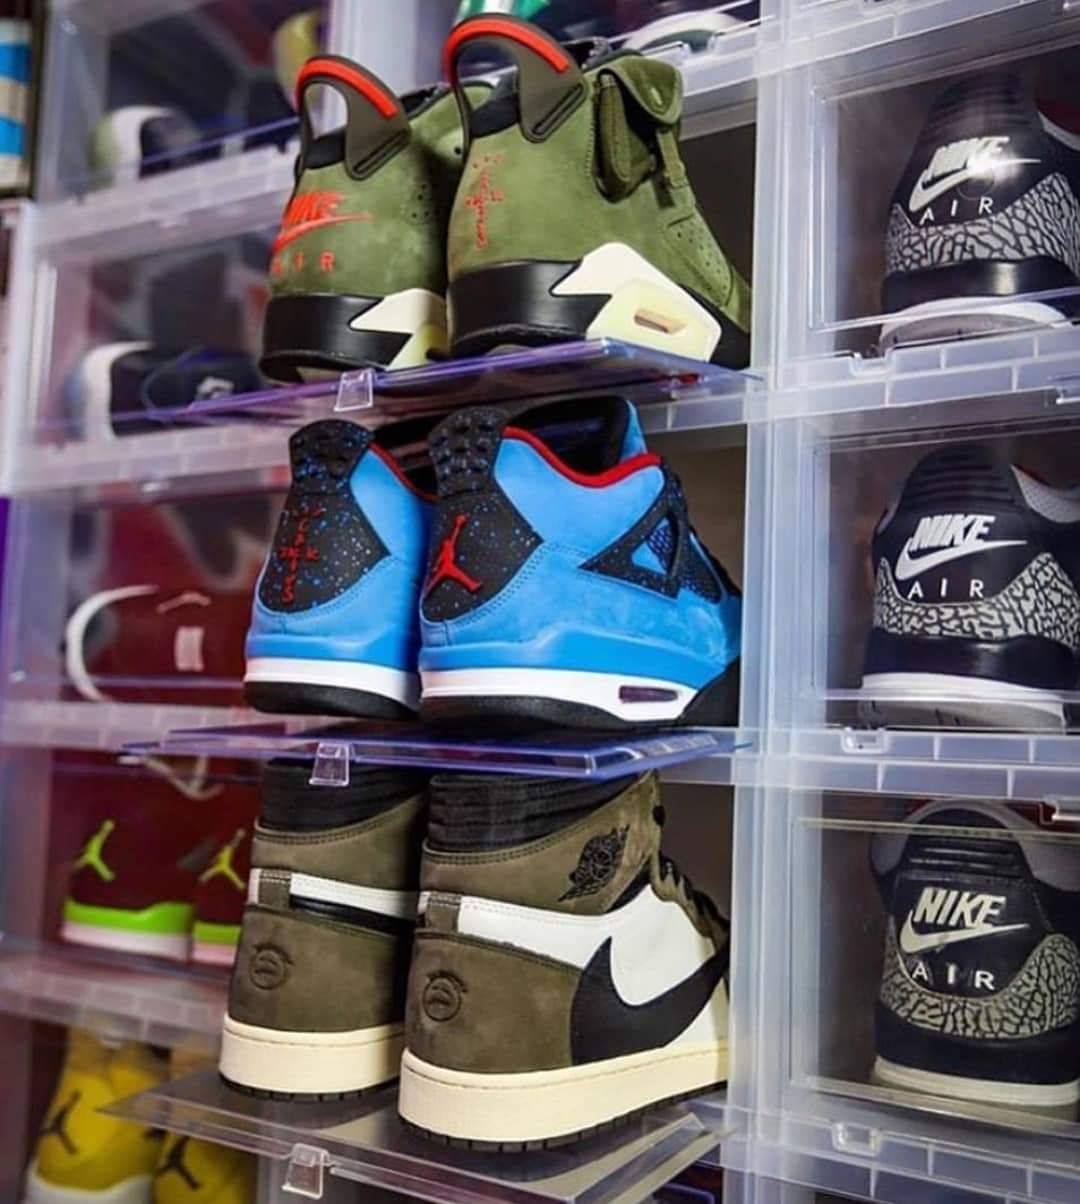 fashion | Sneakers, Sneakers